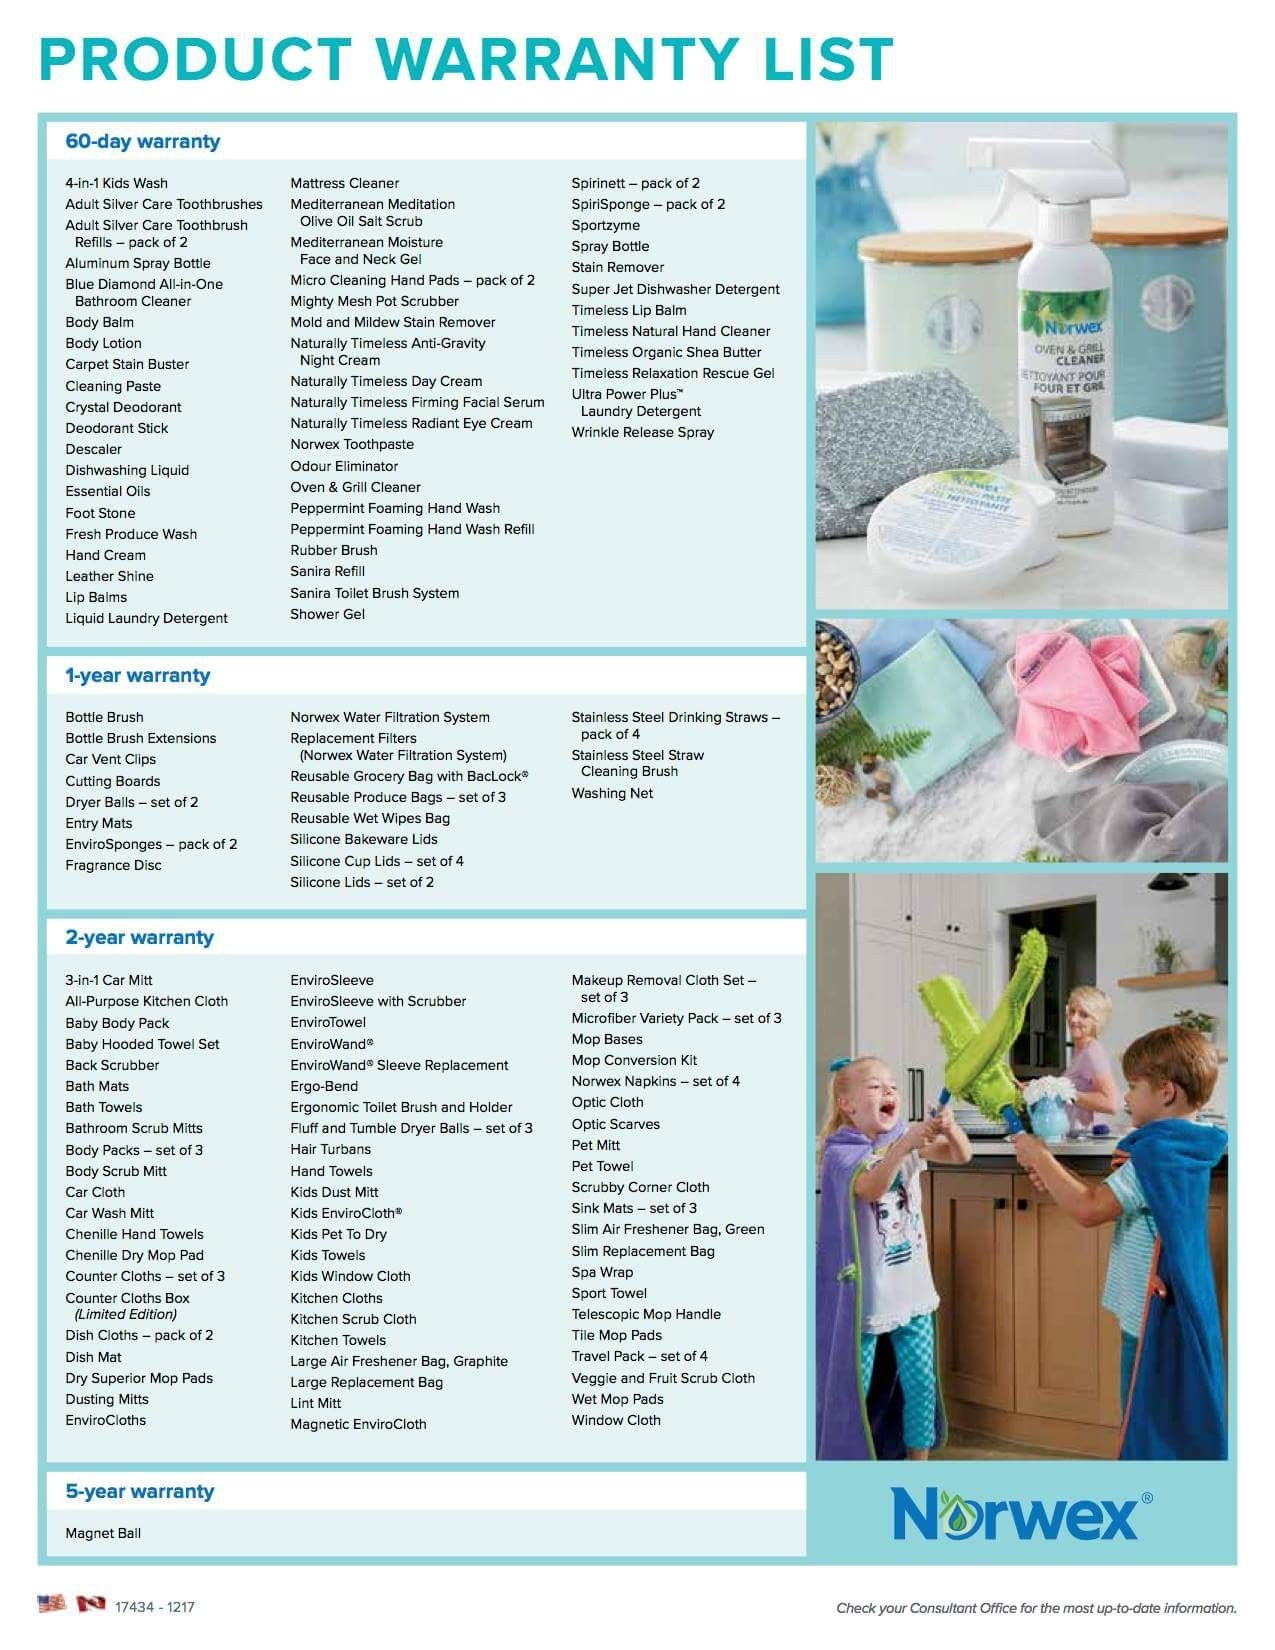 Pin by Lori Demattio on Norwex Cleaning! | Pinterest | Norwex ...